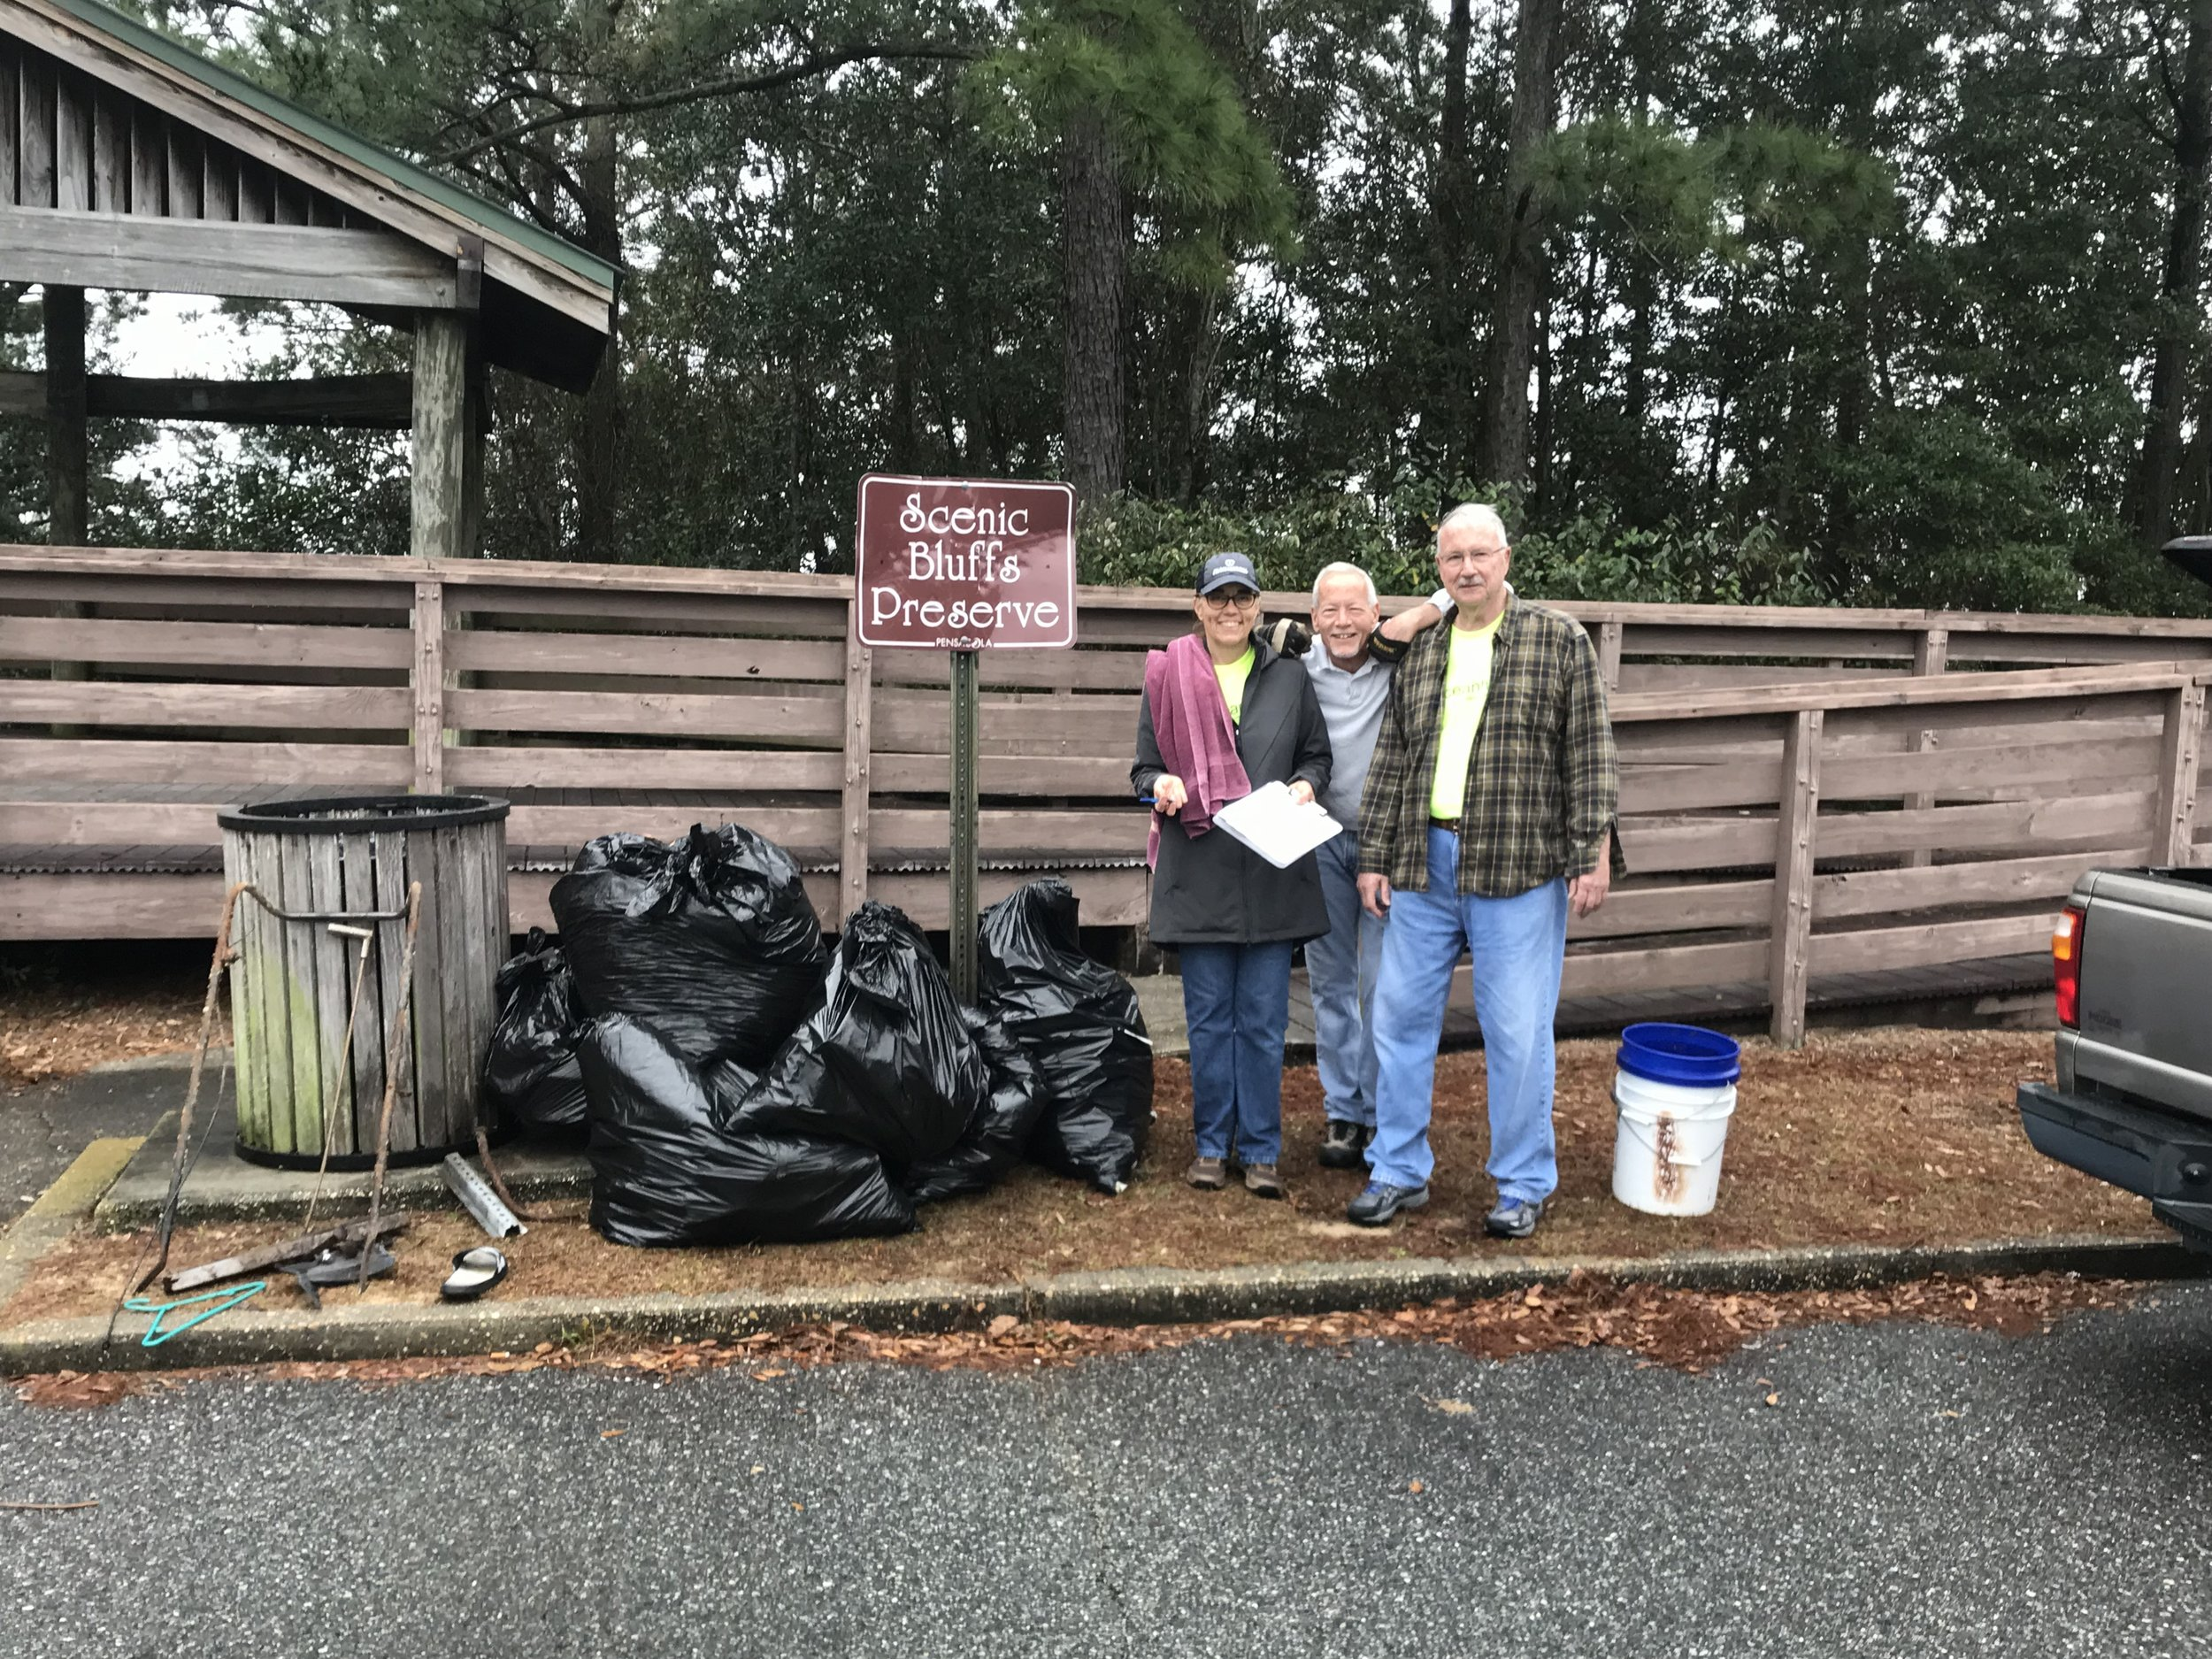 - 28 volunteers showed up to collect 191 lbs of trash - especially glass beer bottles